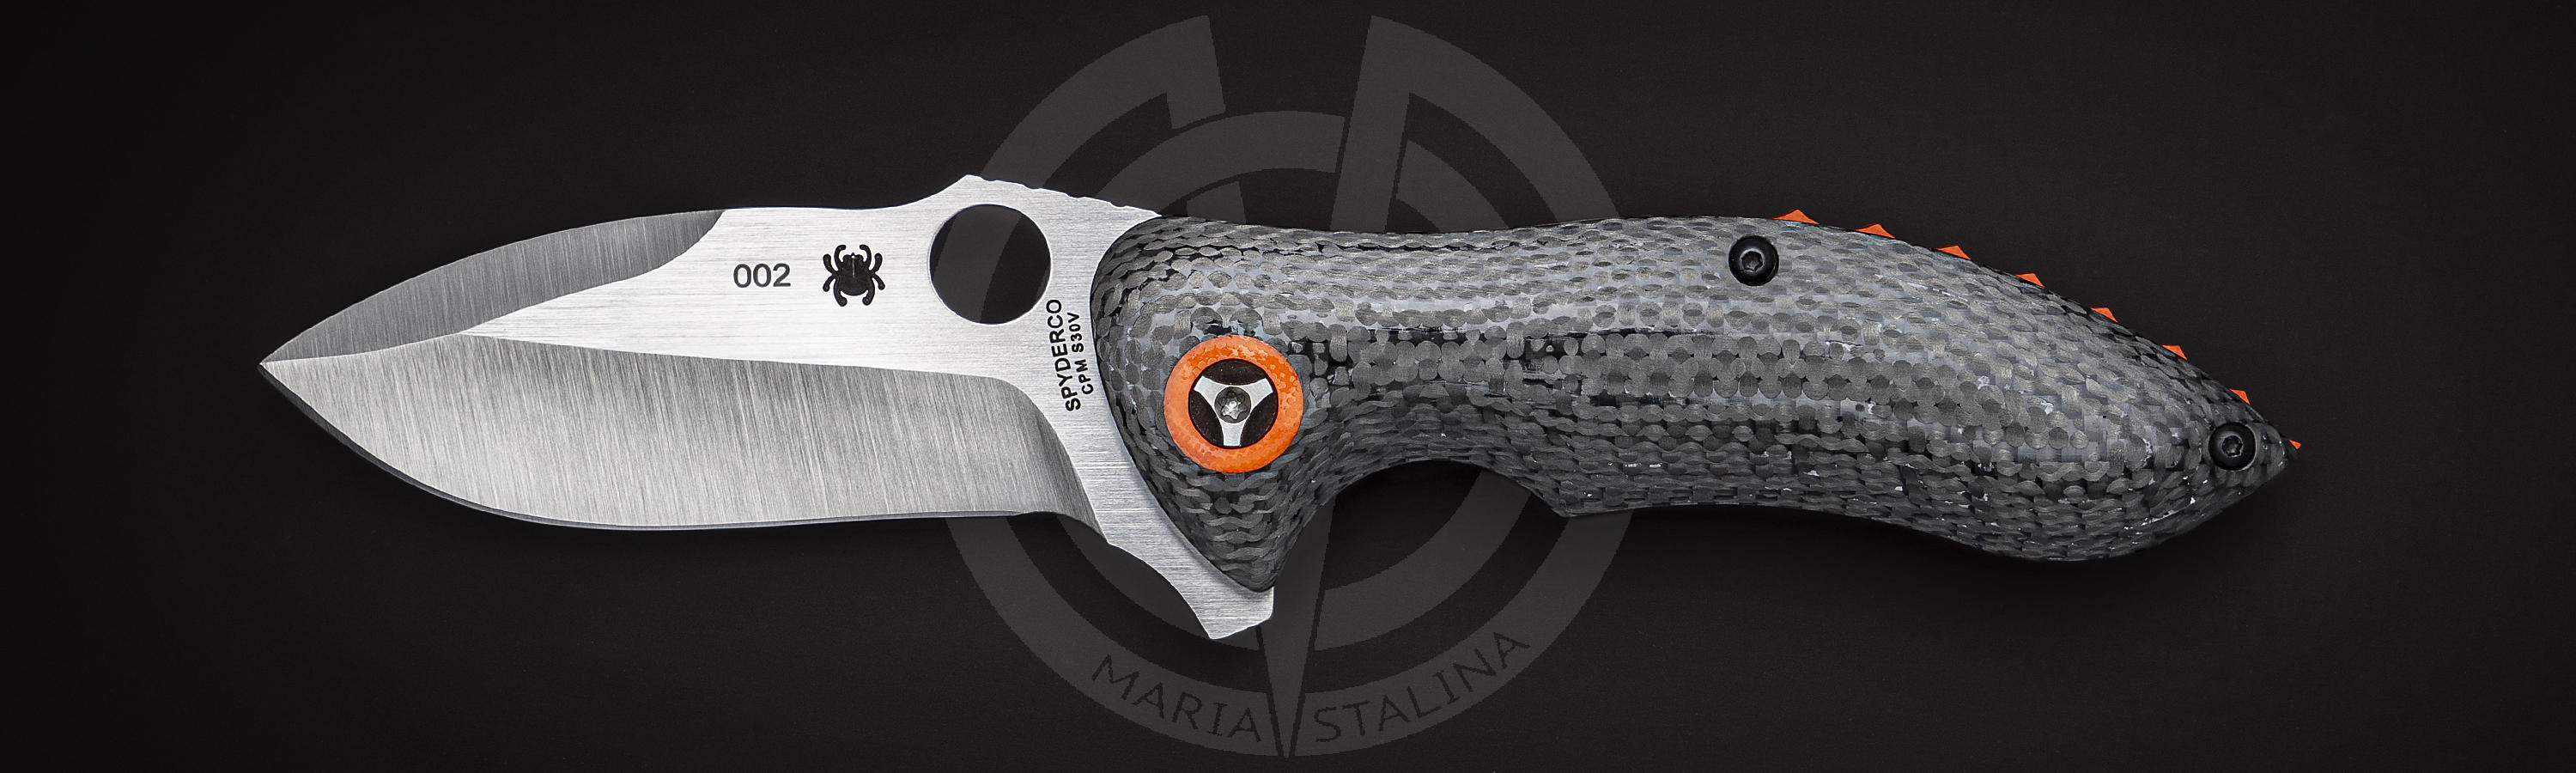 Spyderco Rubicon Limited Edition